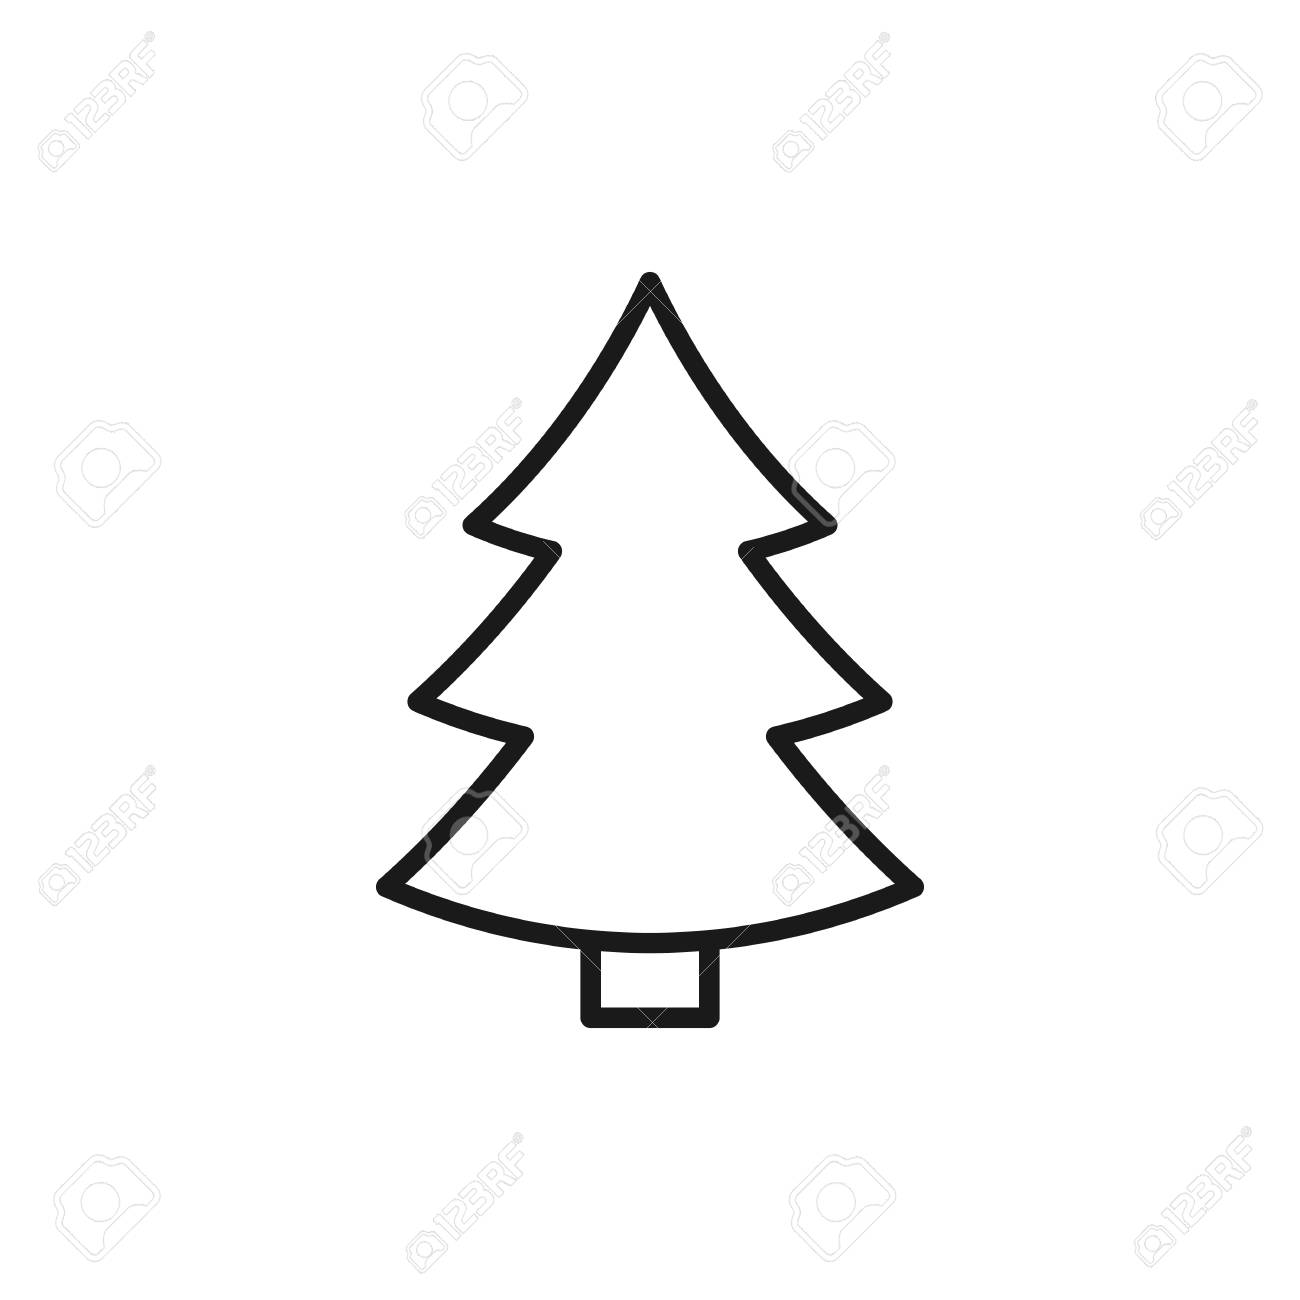 black isolated outline icon of fir tree on white background